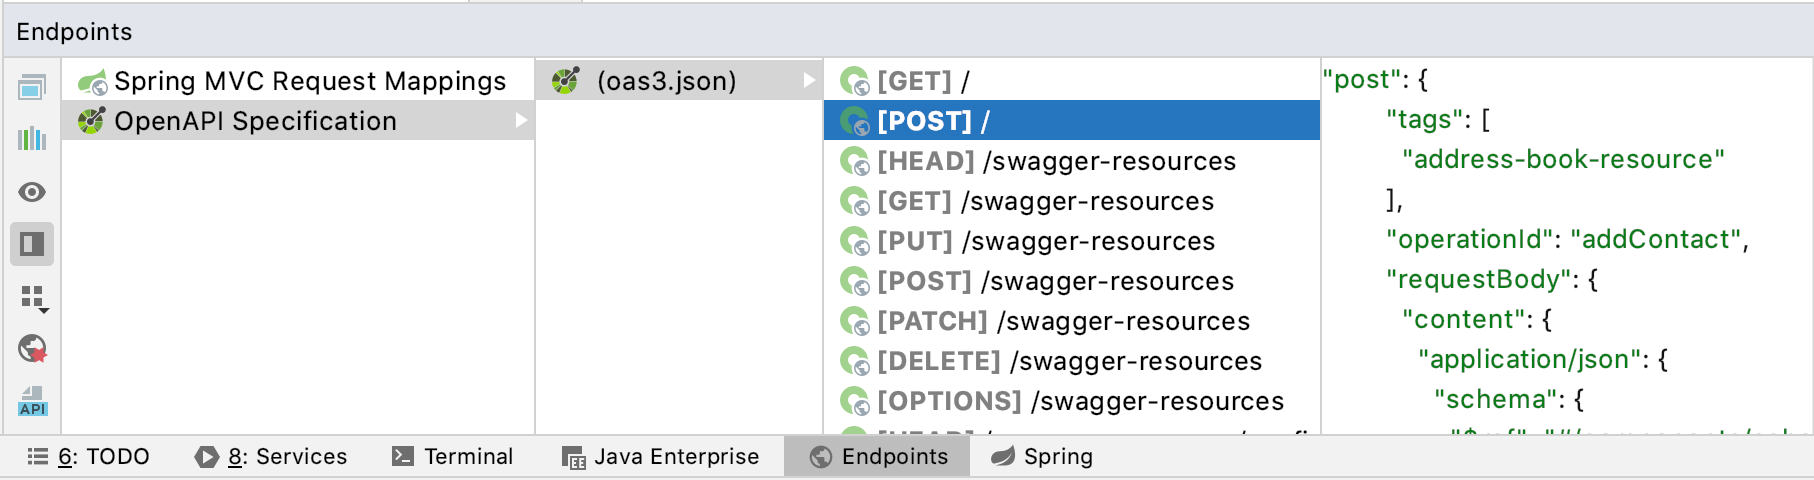 Endpoints from an OpenAPI specification